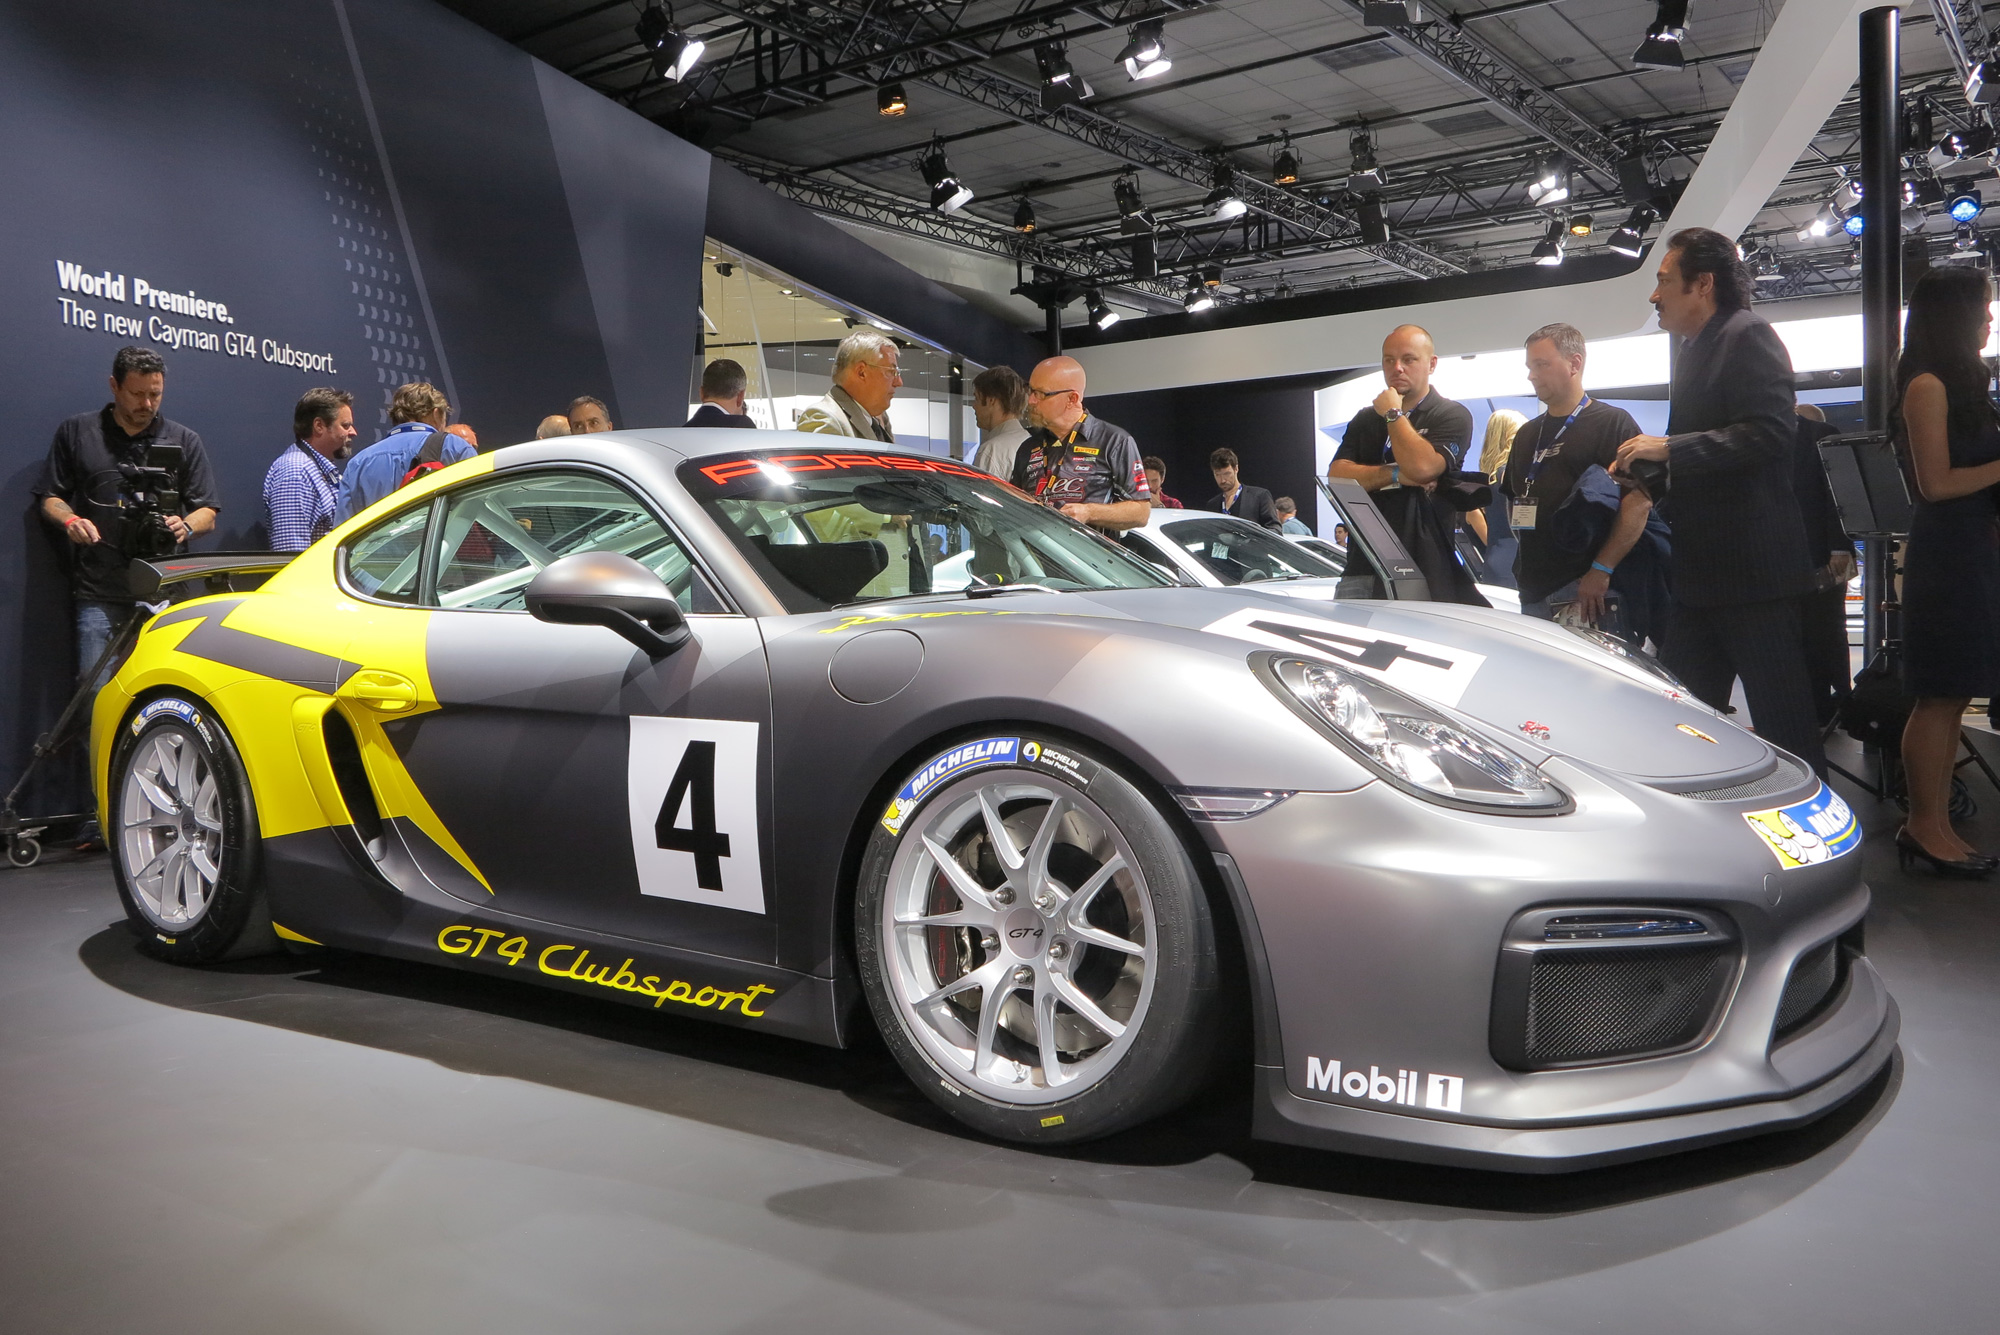 Porsche Cayman Gt4 Clubsport Brings The Heat To La